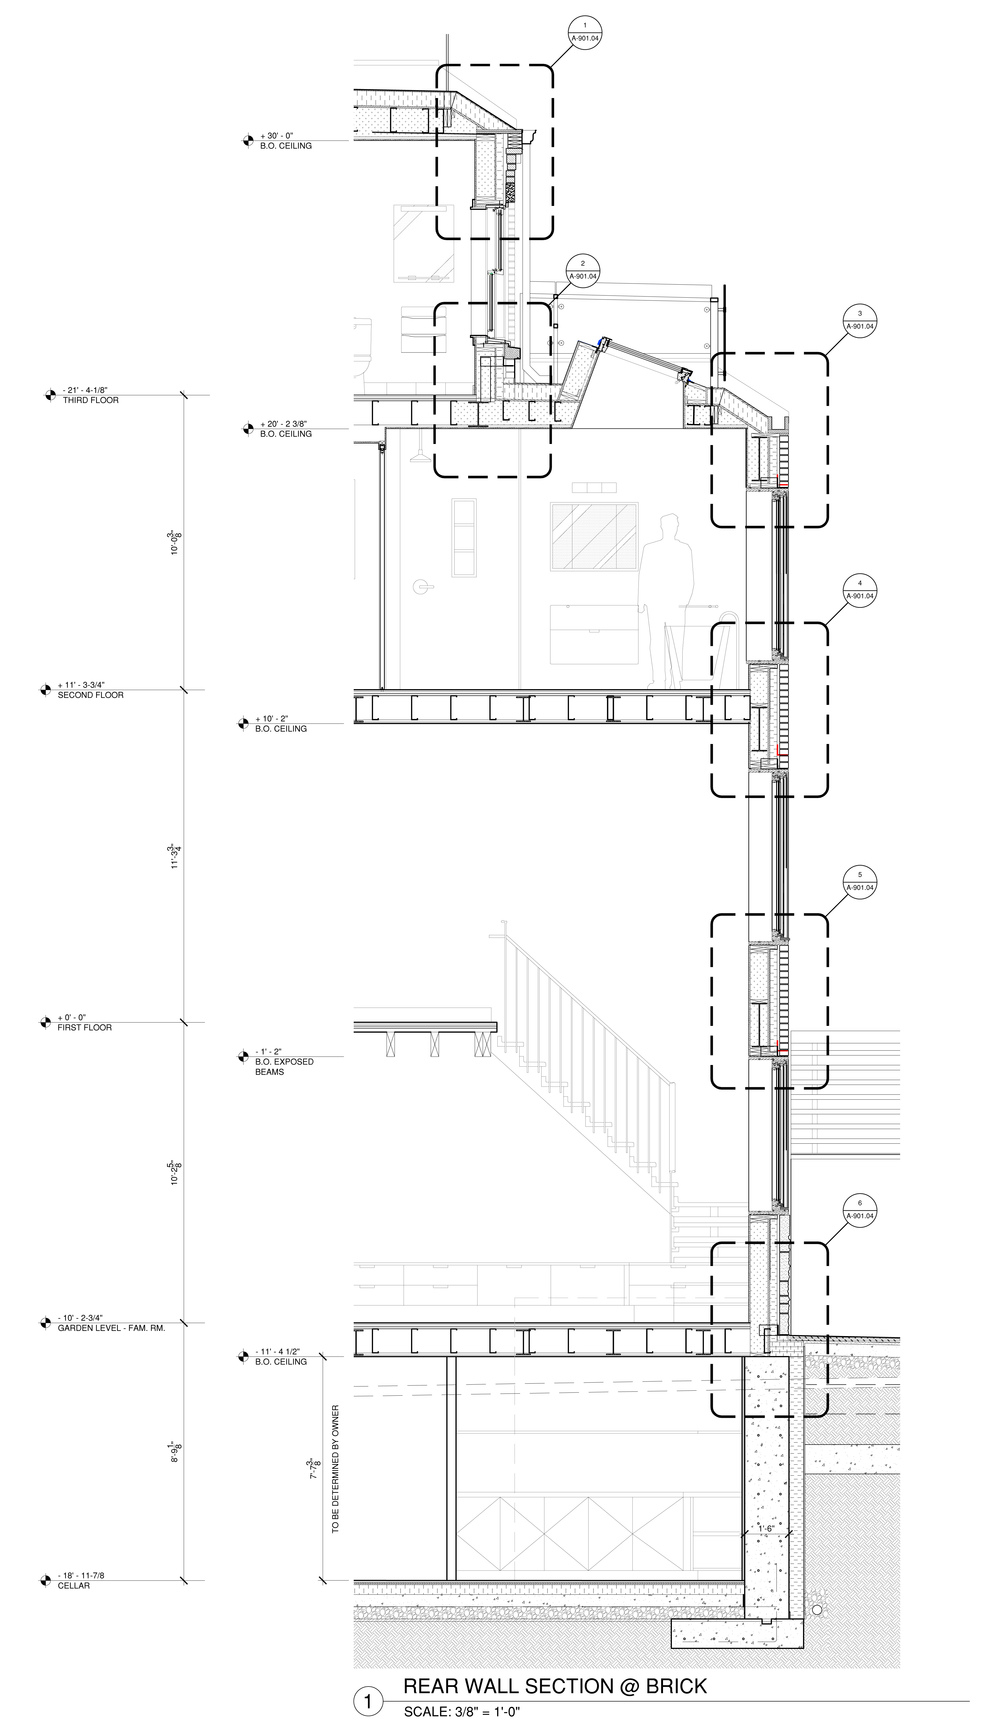 08 - Rear Wall Section.jpg